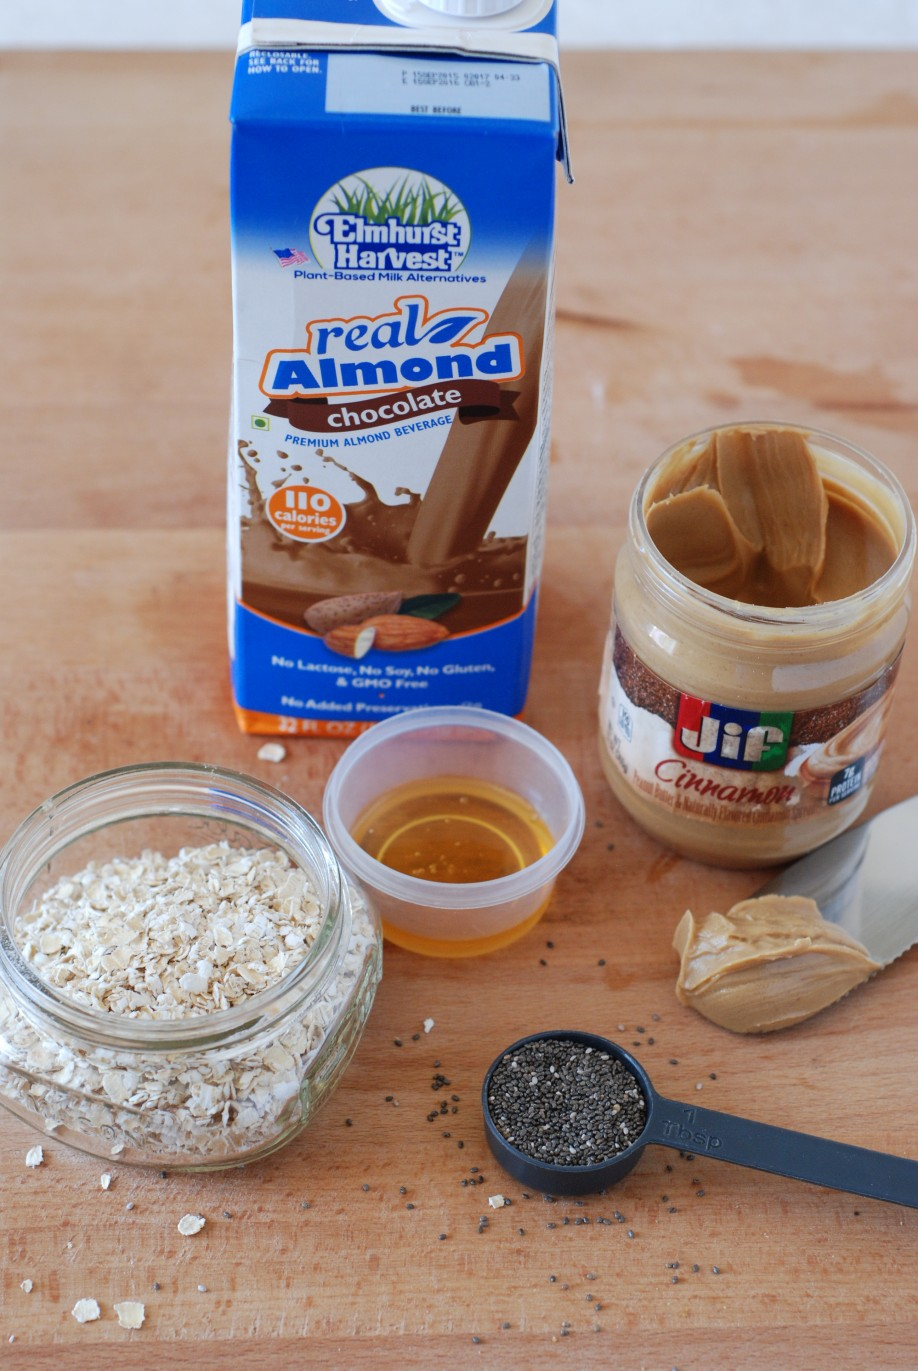 This is so good! Made with chocolate almond milk and cinnamon peanut butter, and it's gluten free, too!